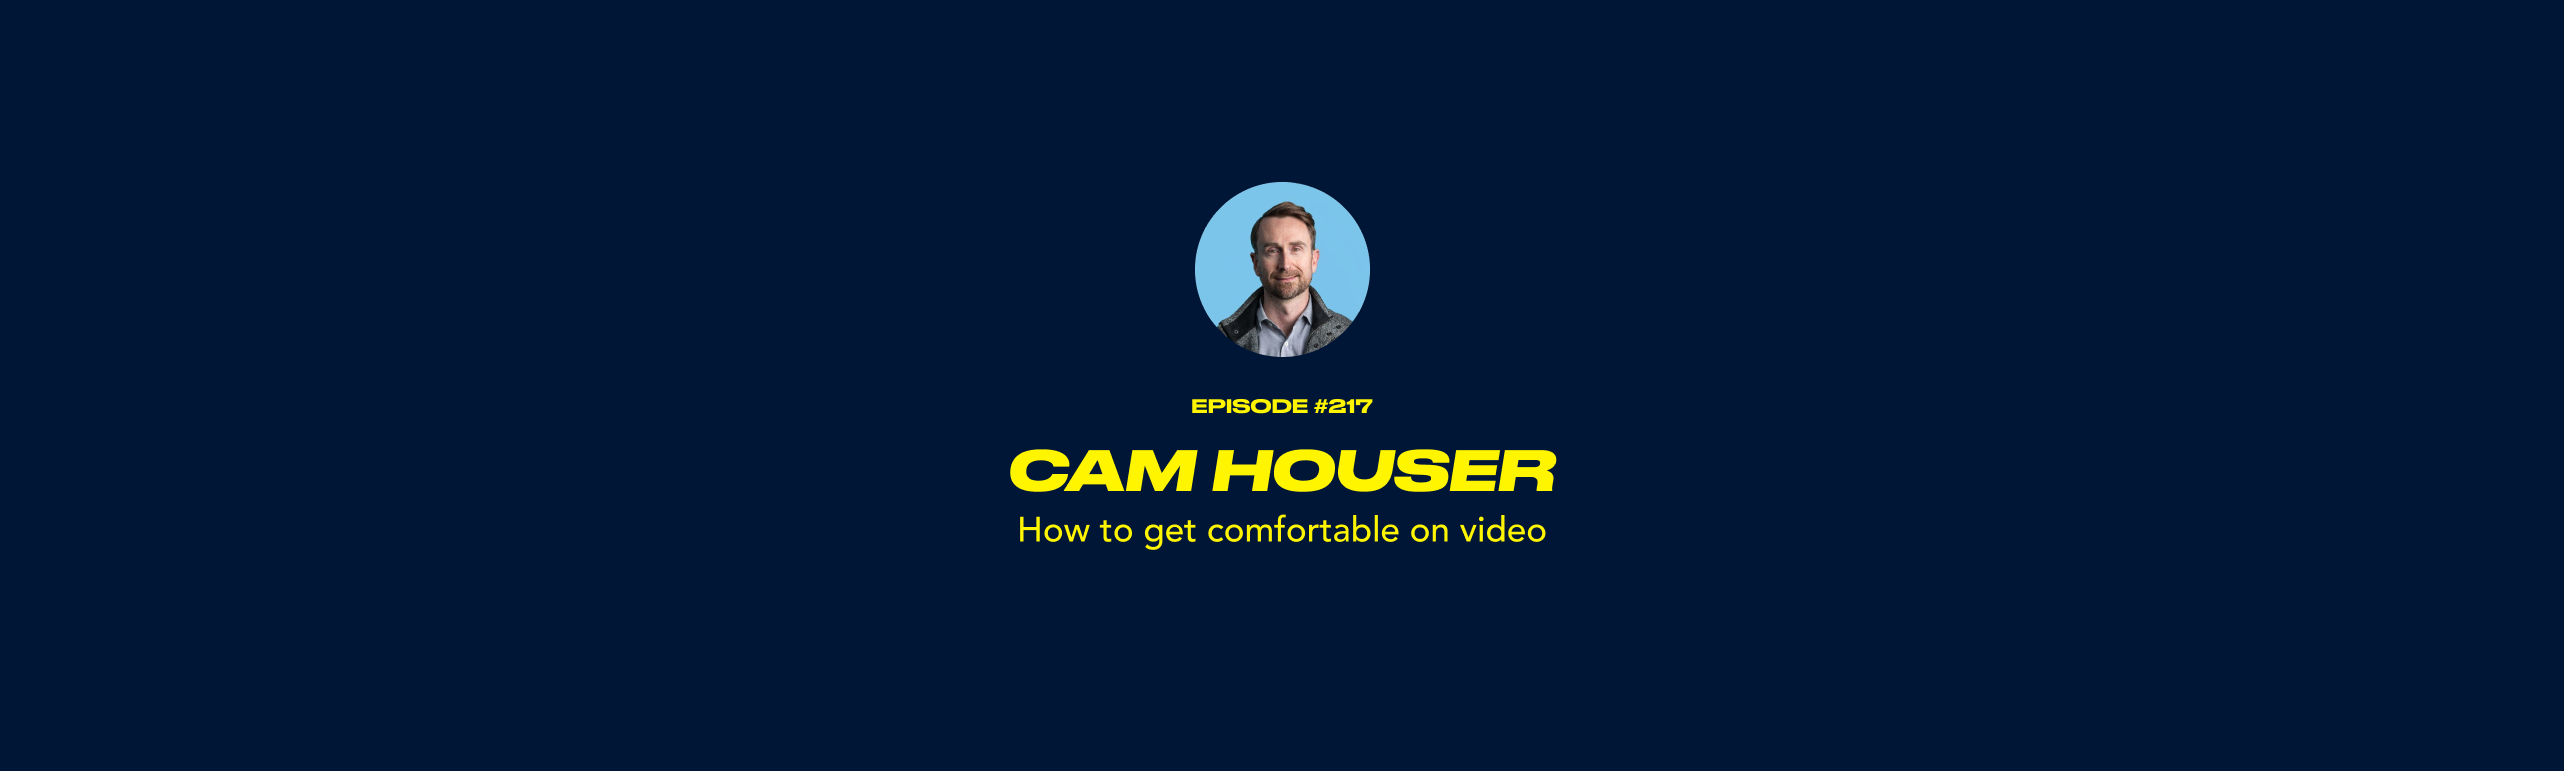 Cam Houser - How to get comfortable on video